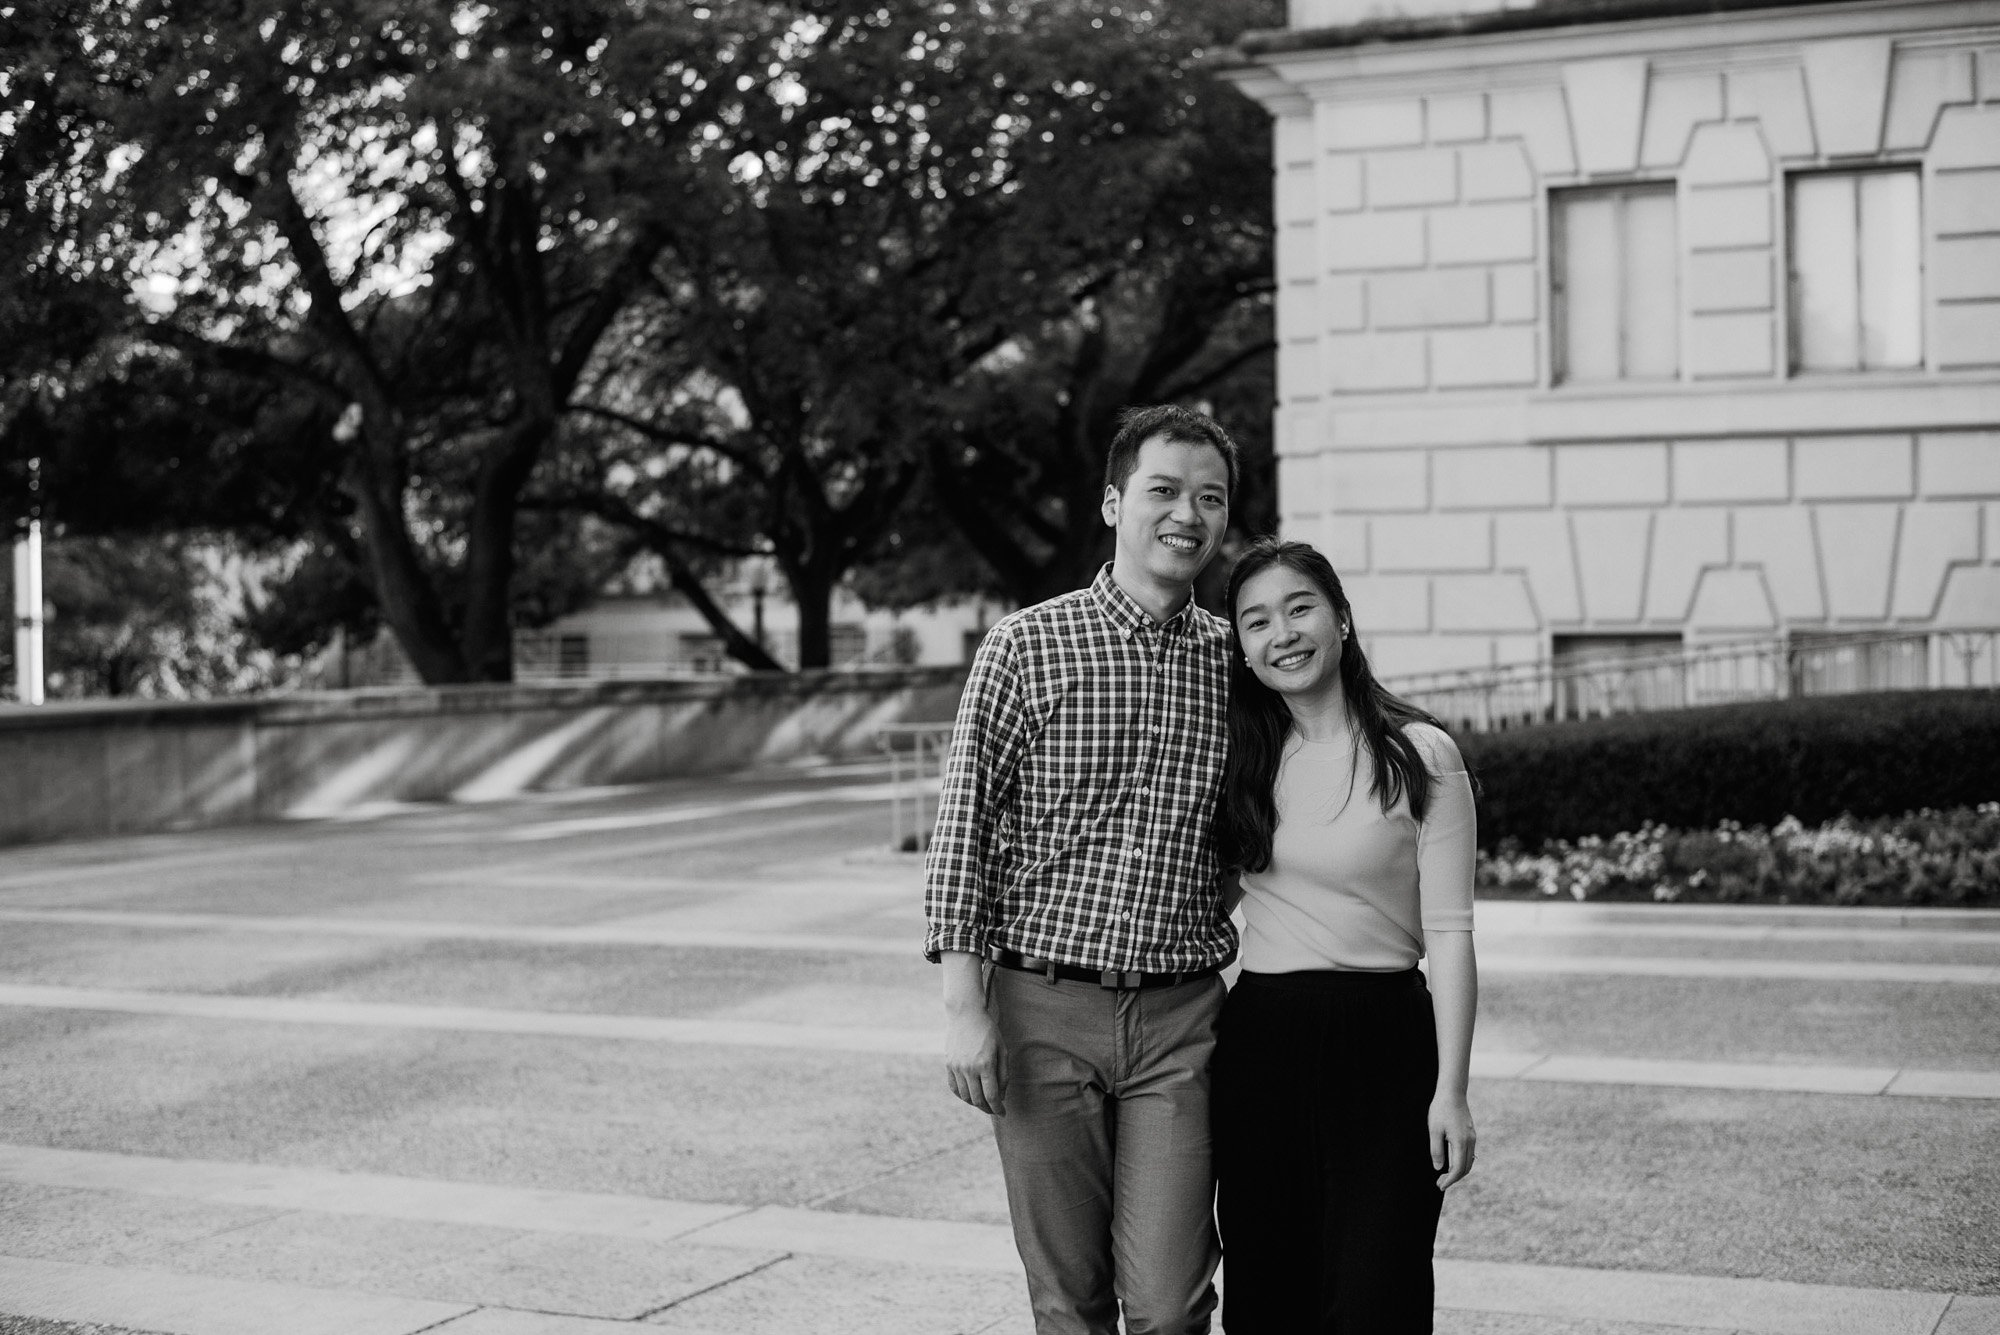 austin engagement session at the university of texas, UT engagement session, austin black and white engagement photos, casual engagement session on the university of texas's campus